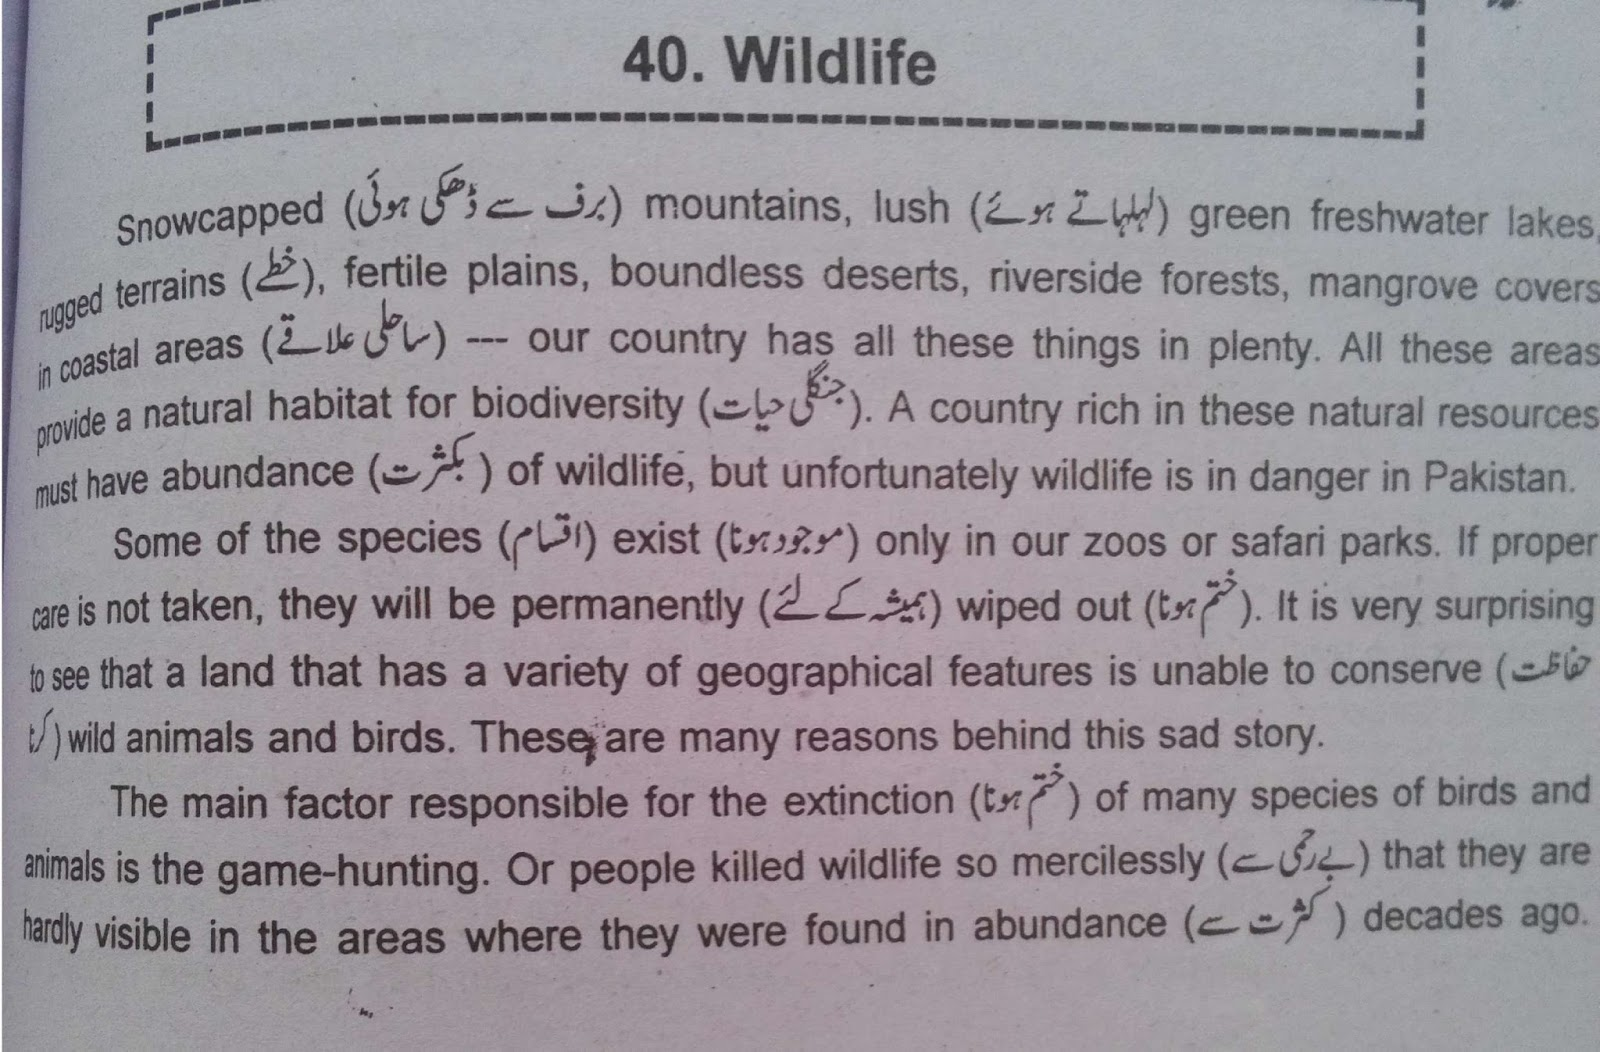 wild life conservation essay wild life essay in english for  wild life essay in english for primary to higher classes 2017 essay on save wildlife 150 water pollution